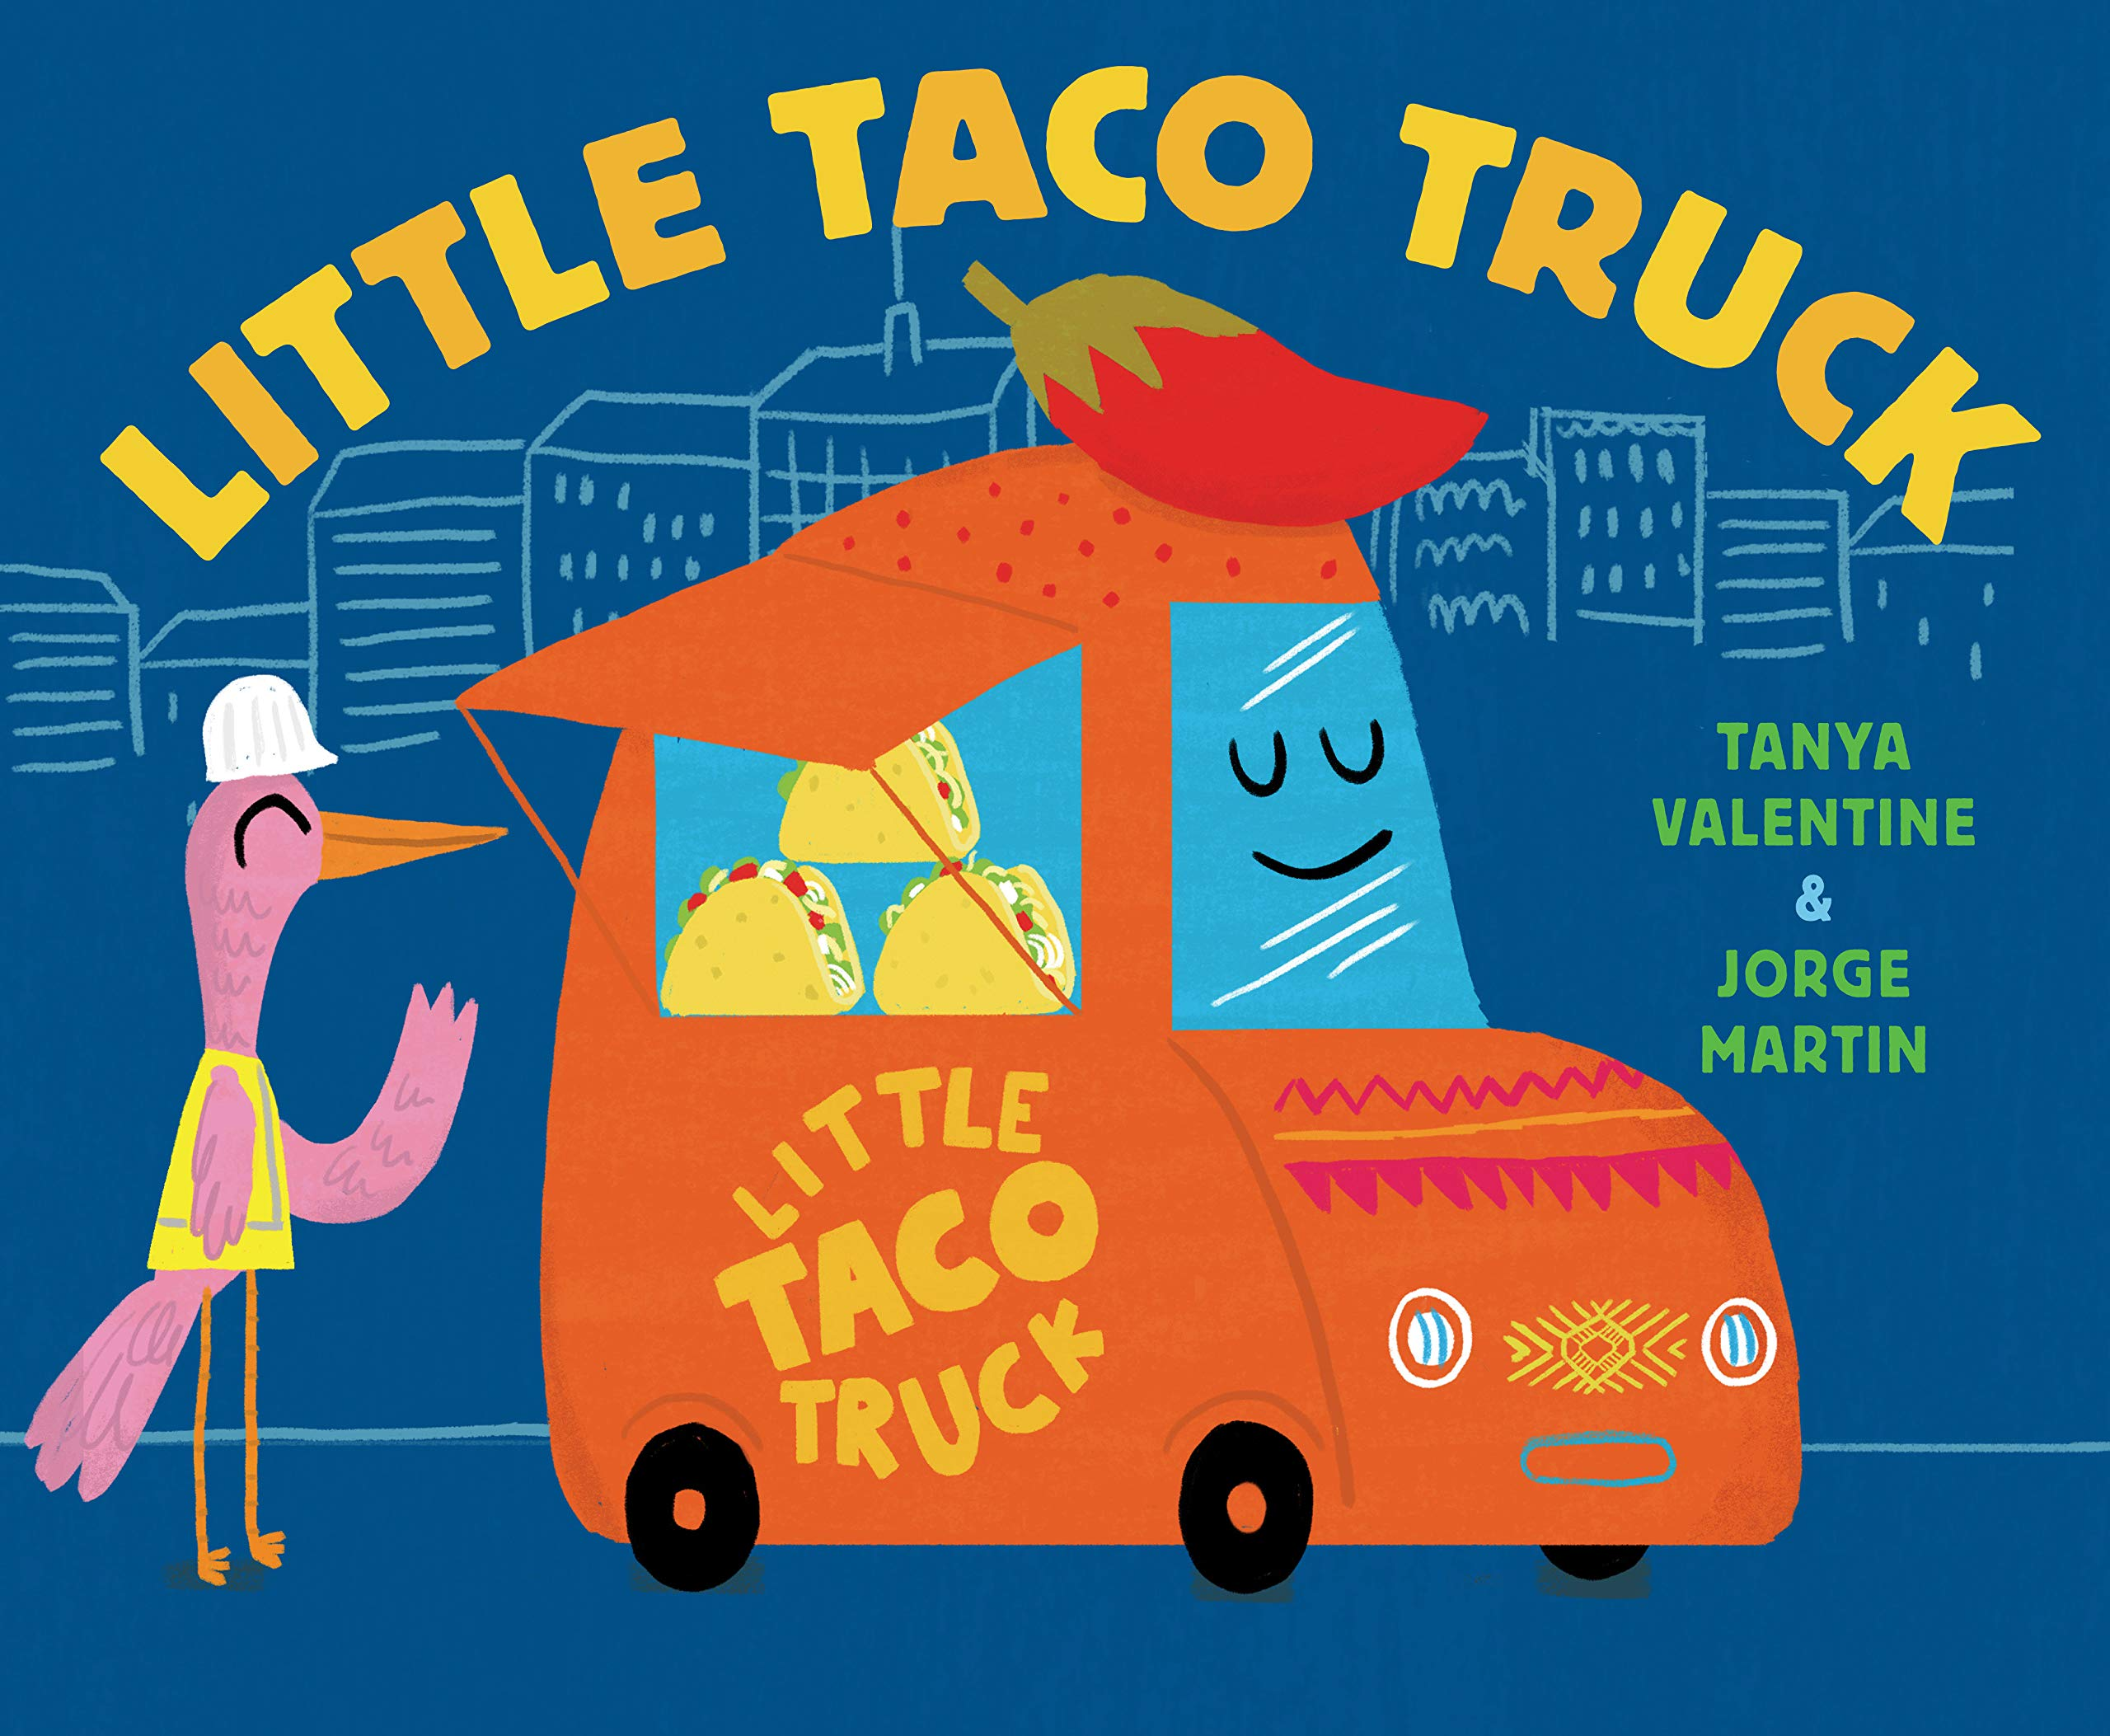 Little Taco Truck book cover